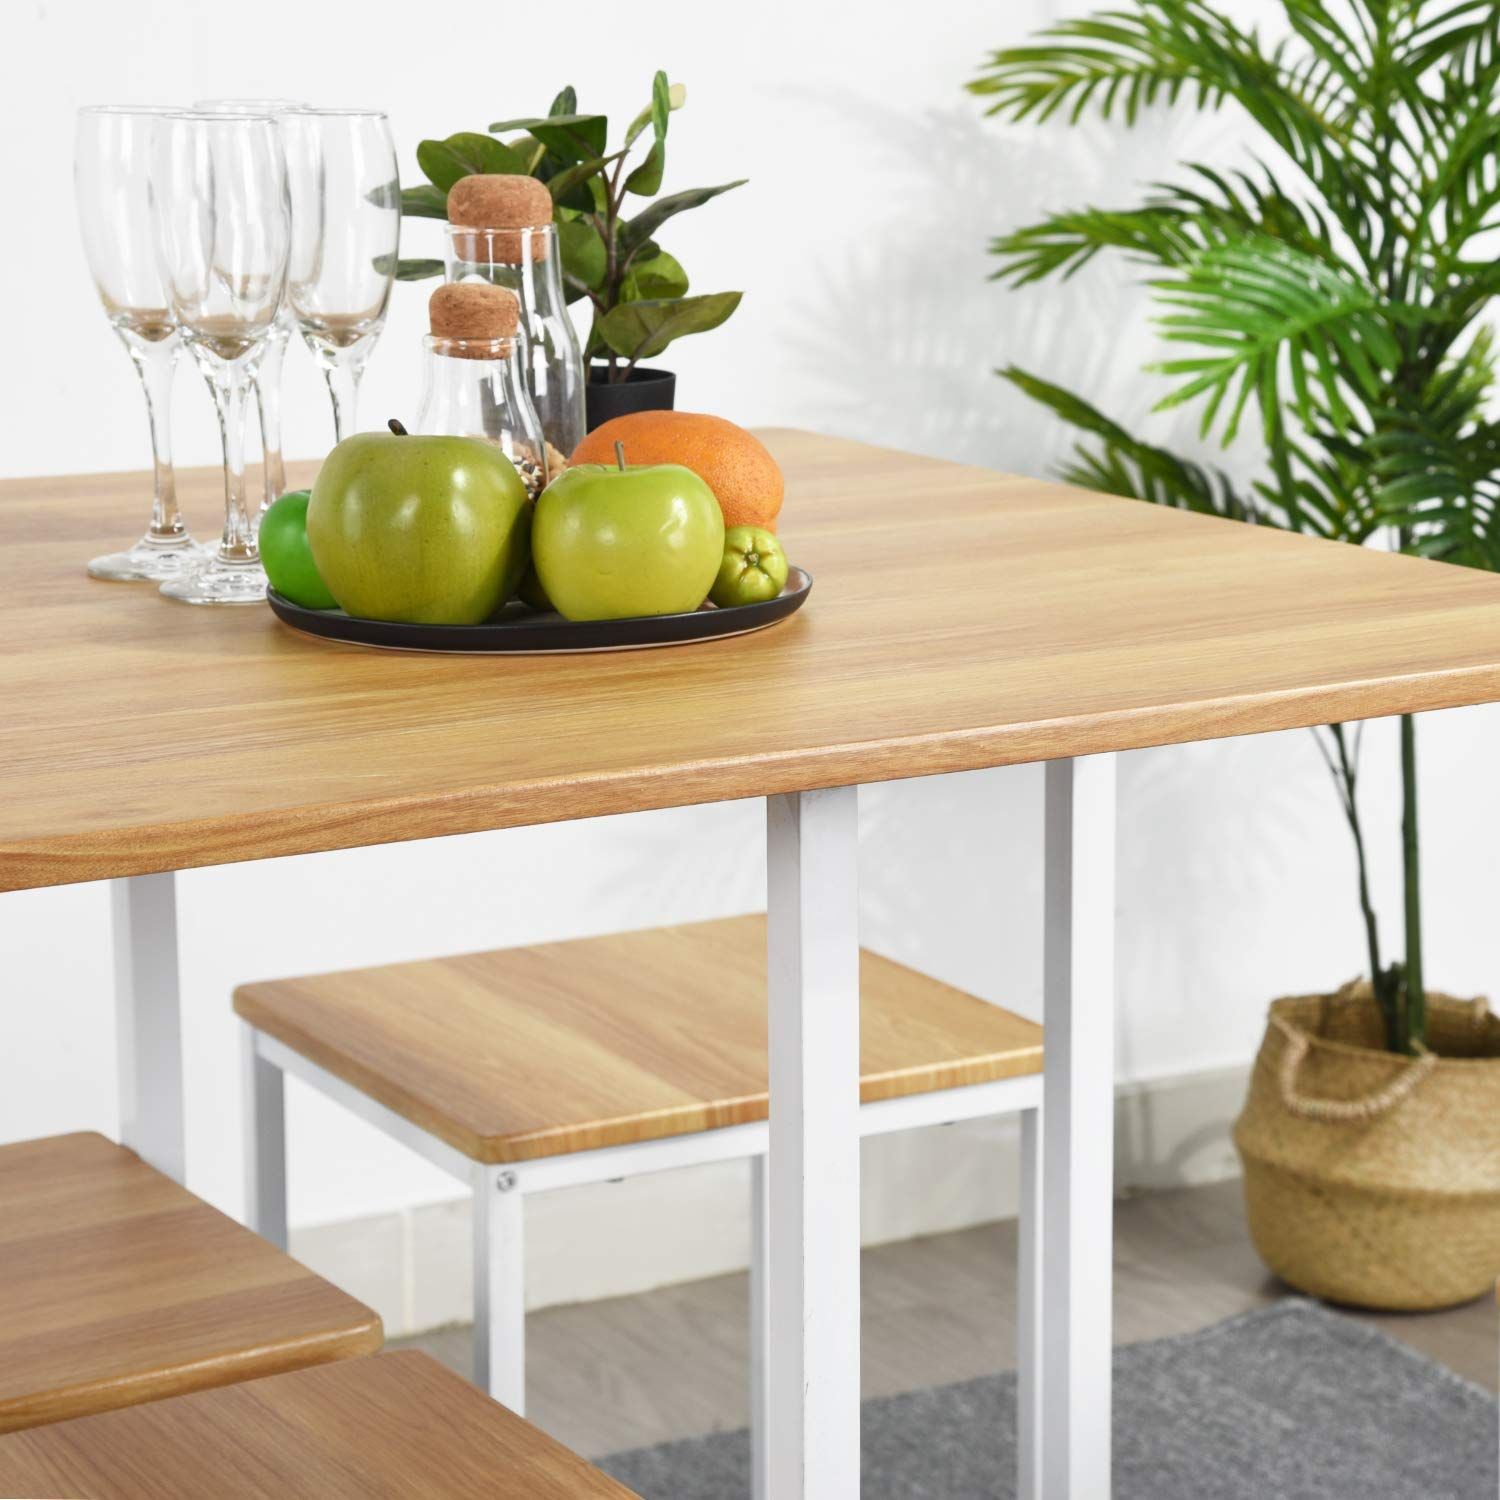 Furniturer 5 Piece Wooden Metal Dining Table Sets Square Dining Table With 4 Dining Chairs For Home Kitchen M Metal Dining Table Dining Table Setting Furniture